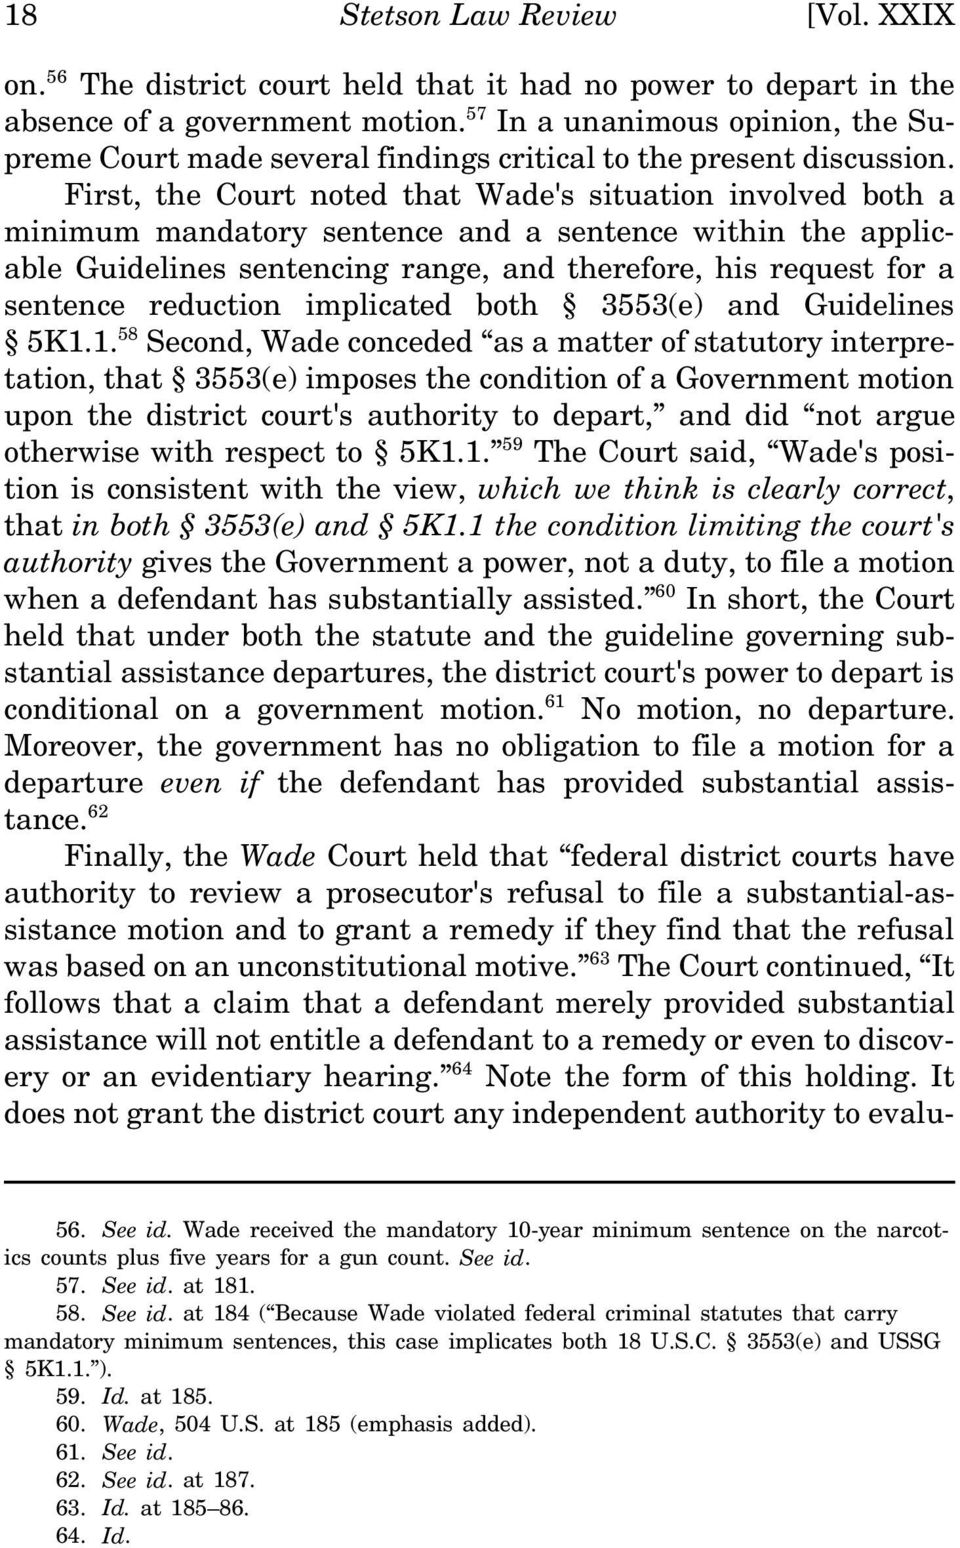 First, the Court noted that Wade's situation involved both a minimum mandatory sentence and a sentence within the applicable Guidelines sentencing range, and therefore, his request for a sentence